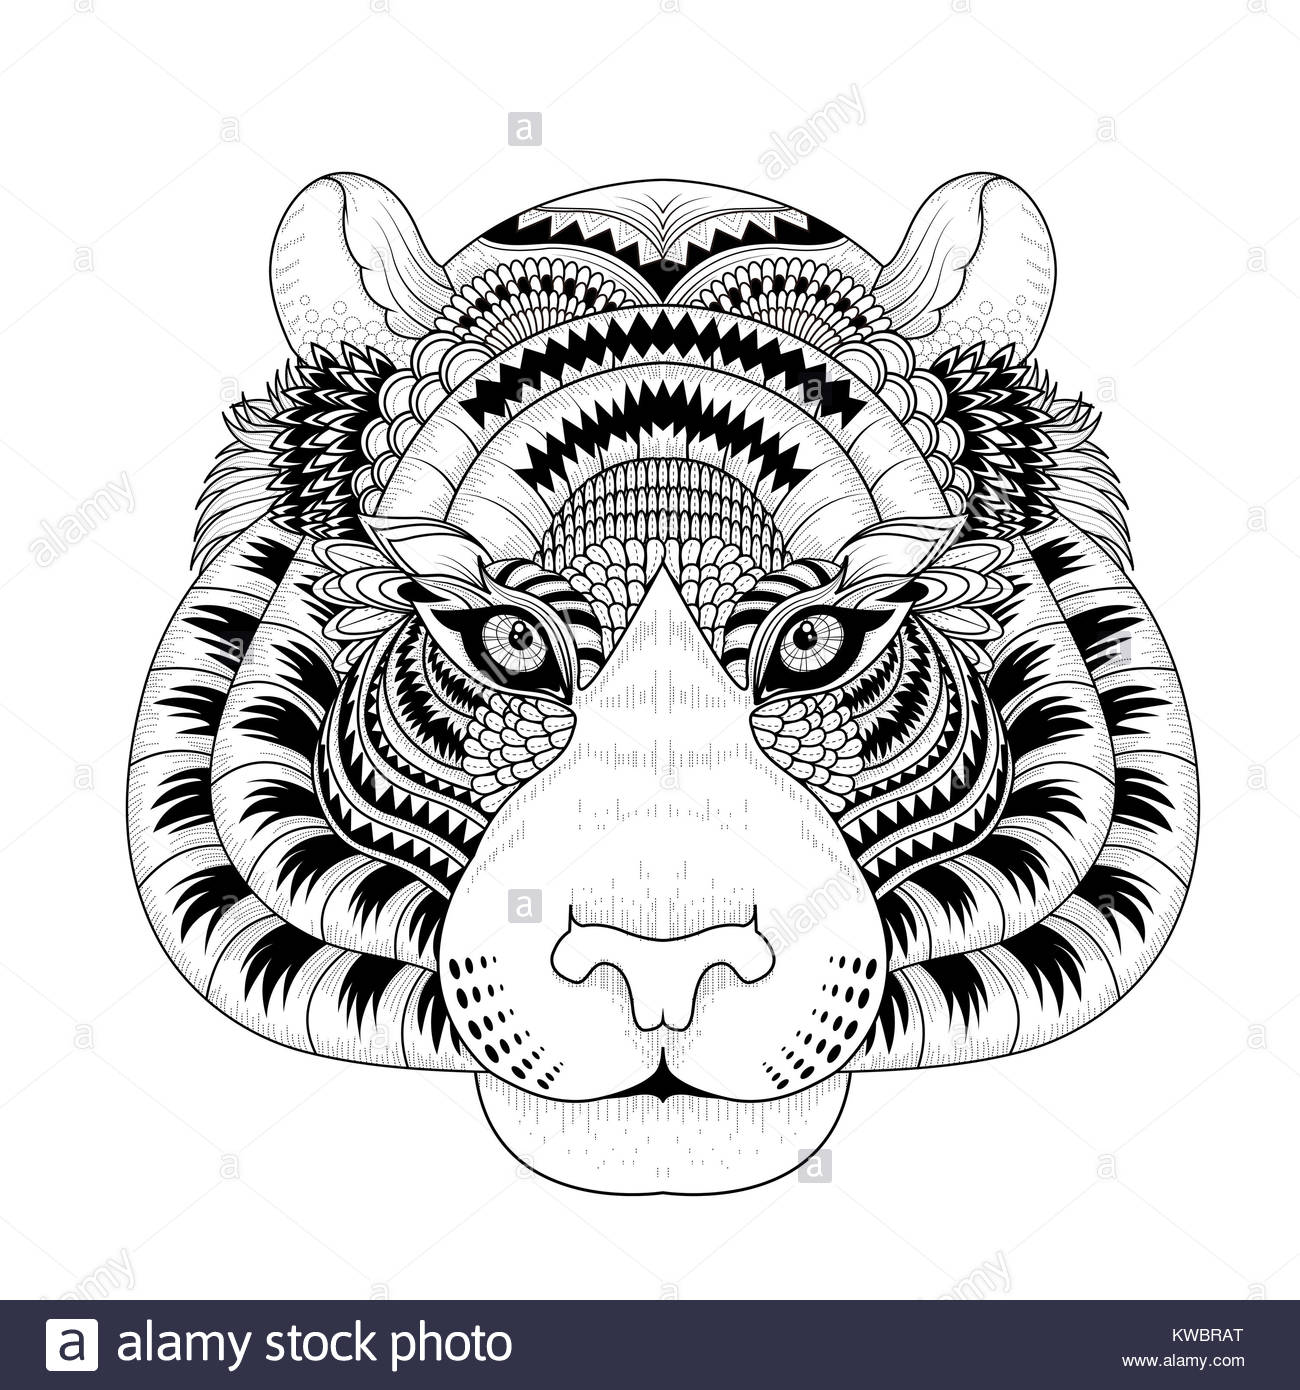 Outline Tiger Head Animal Vector Stockfotos & Outline Tiger Head ...